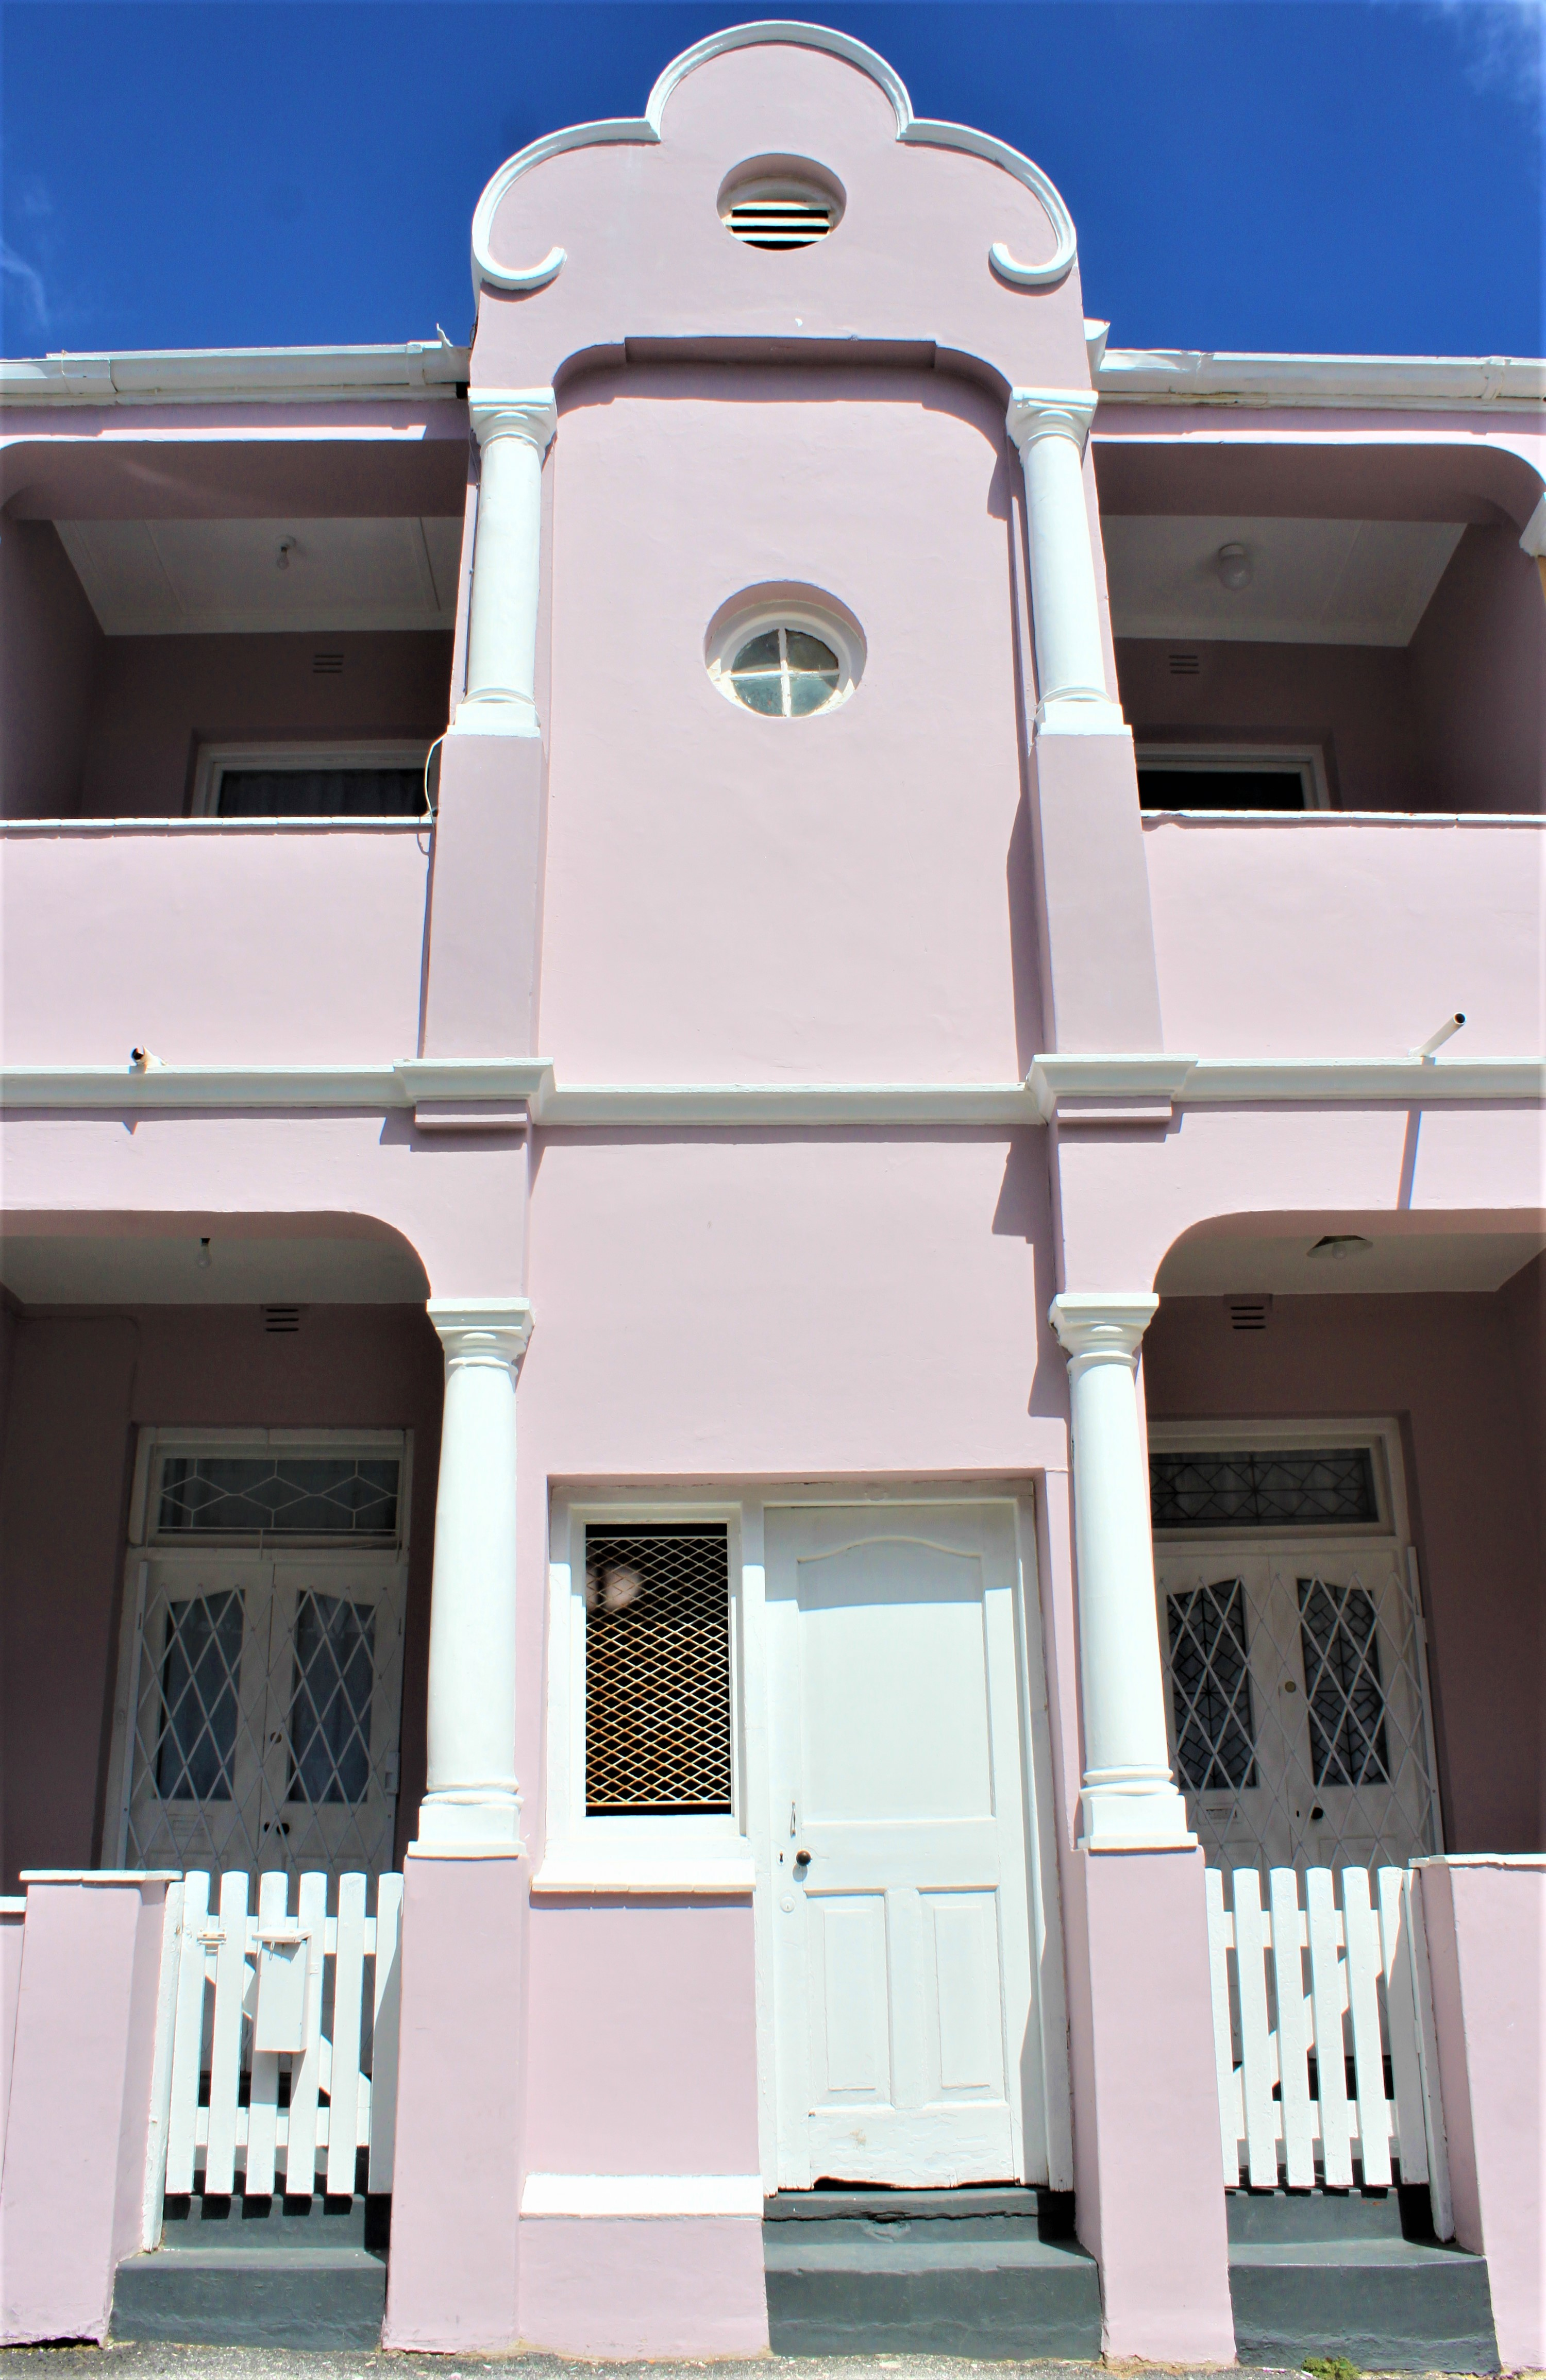 Studenthouse in Sea Point, Cape Town